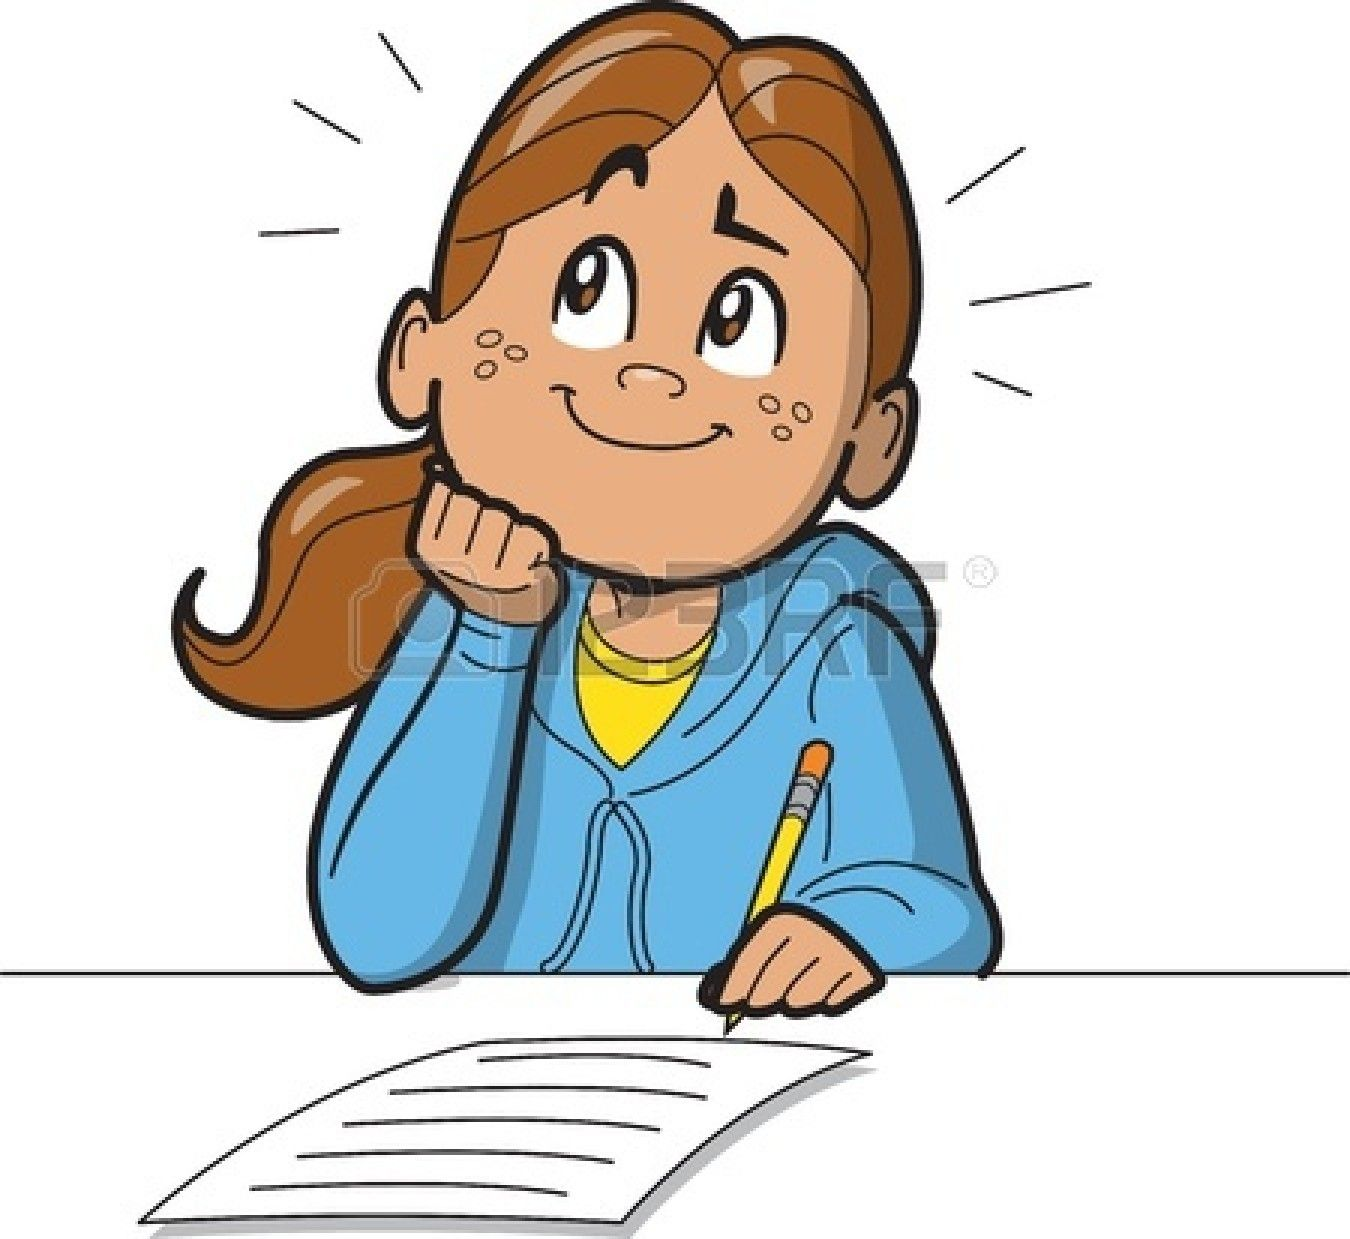 school girl clipart schoolgirl or woman taking a test or filling out rh pinterest com text clip art test clip art images